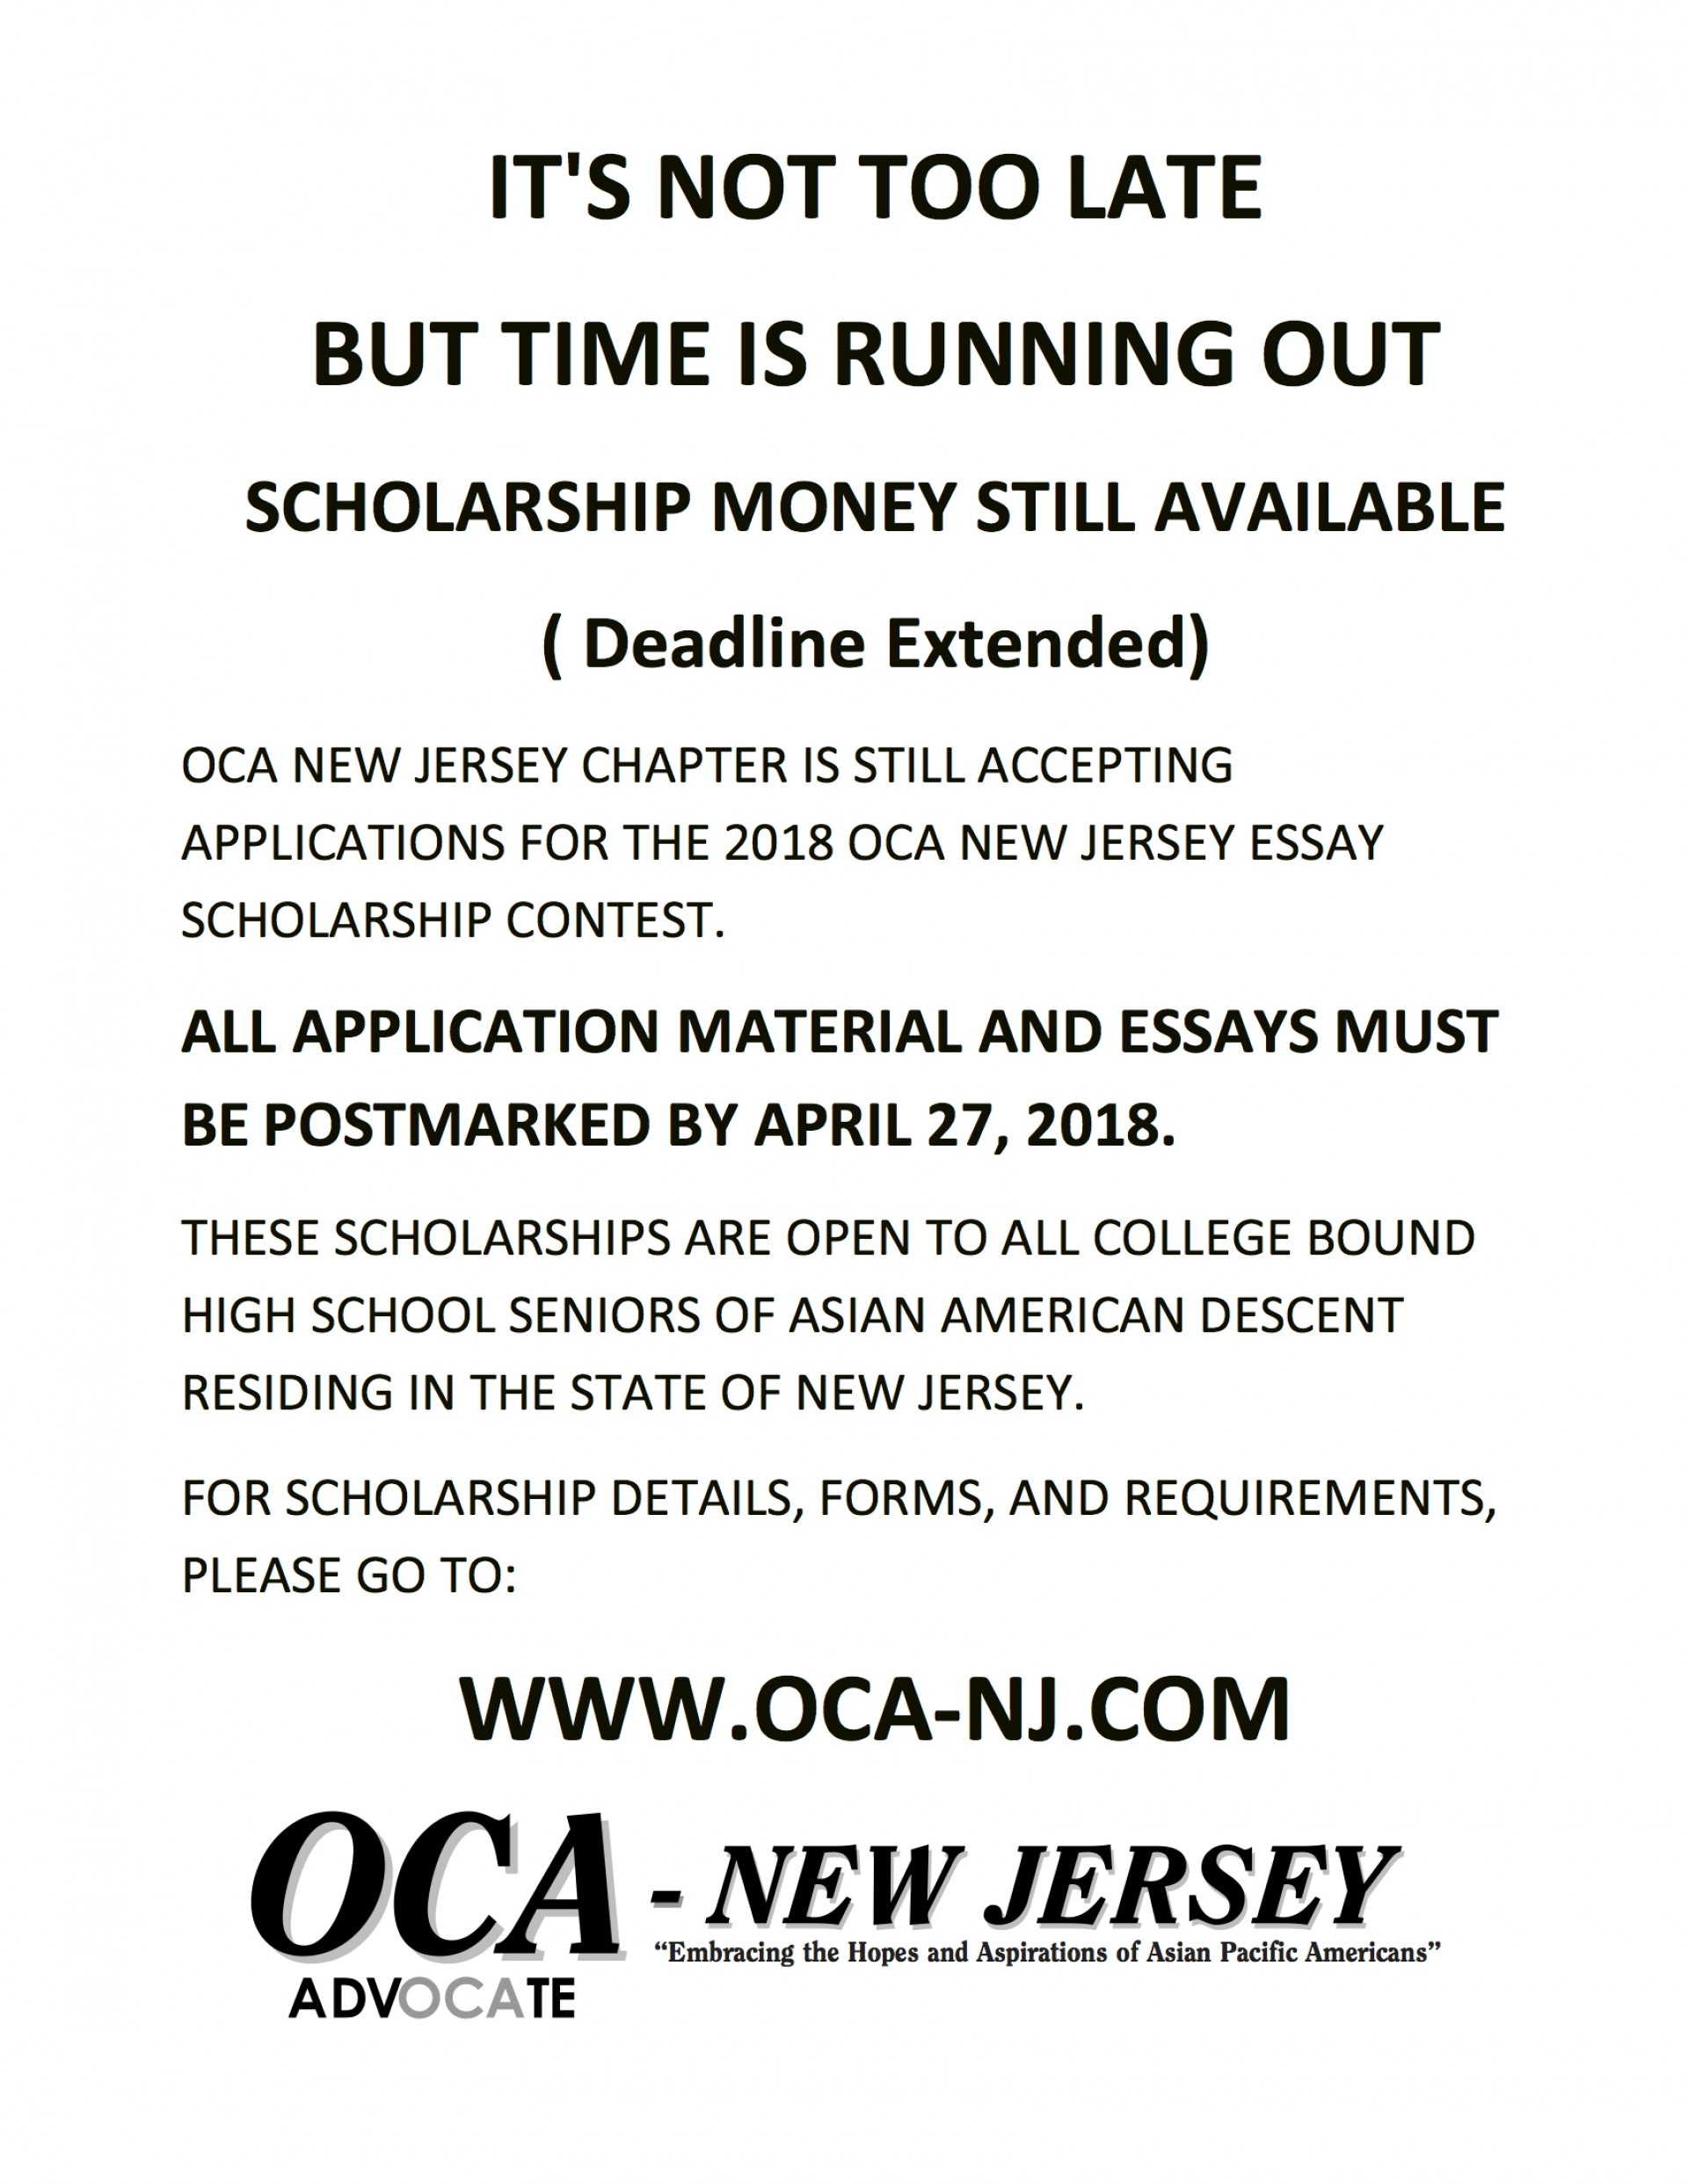 014 Essay Example Scholarships Entended Deadline Oca Nj Shocking 2018 For International Students Examples Canada 2019 1920